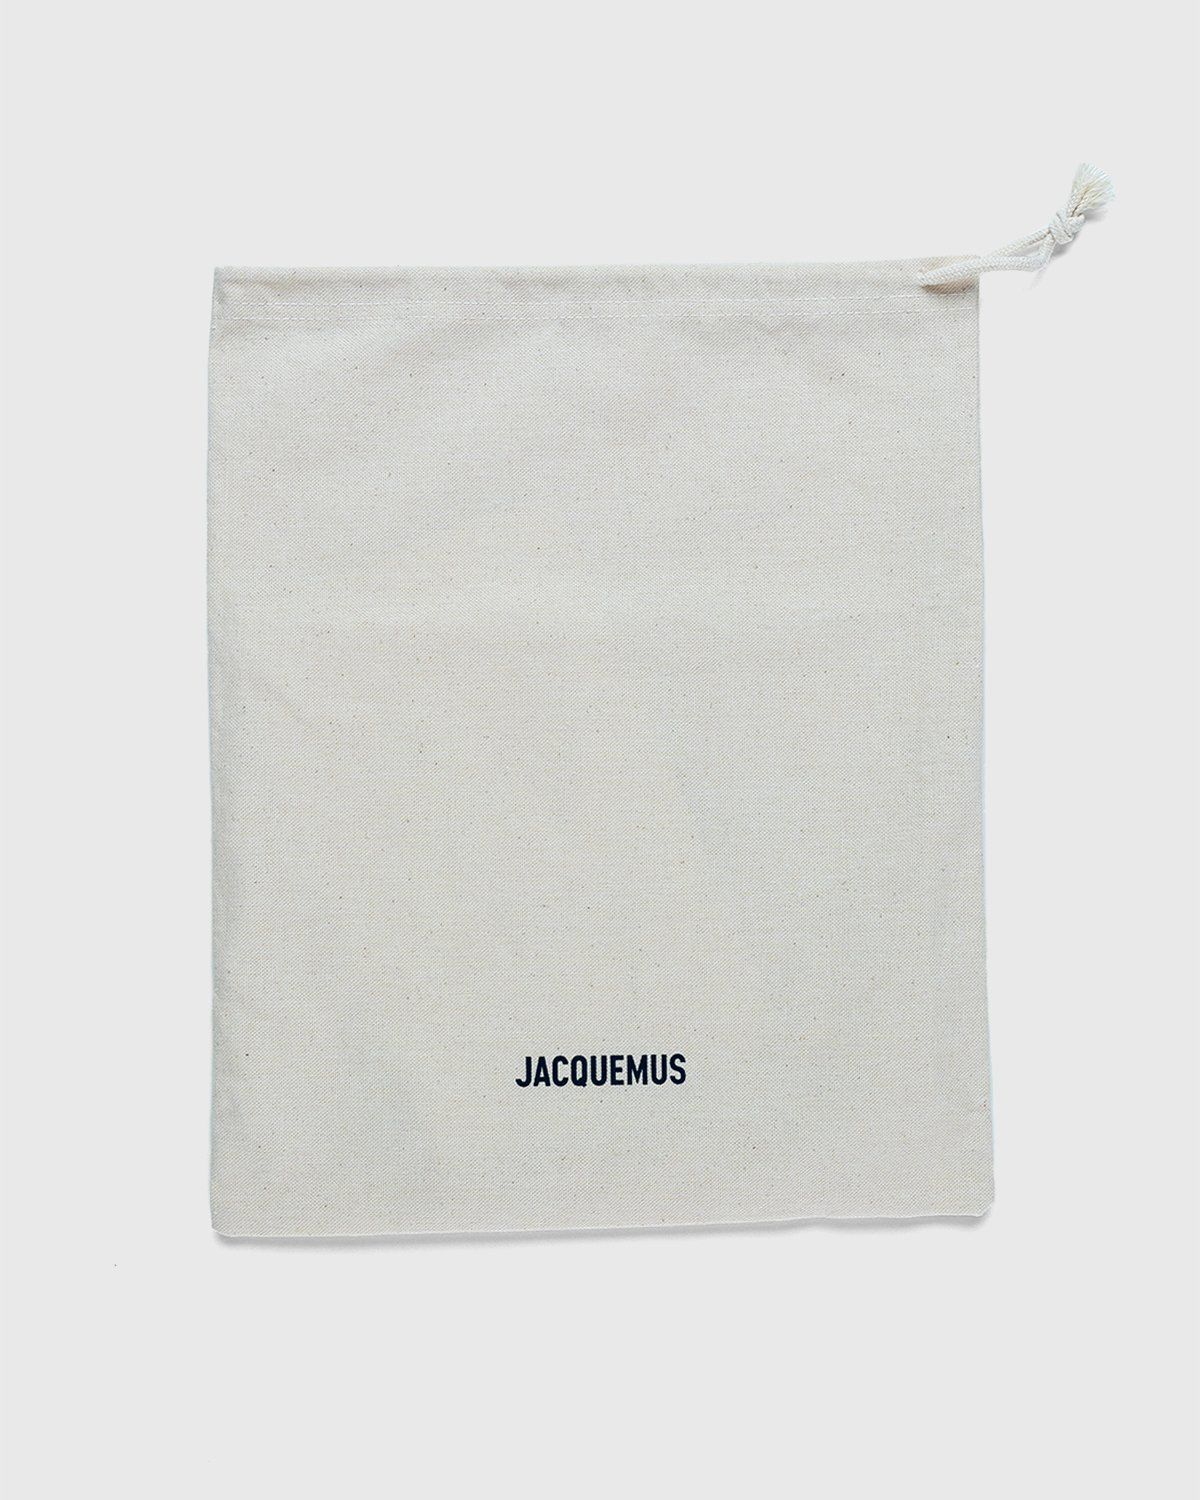 Jacquemus – Le Chiquito Homme Brown - Image 7